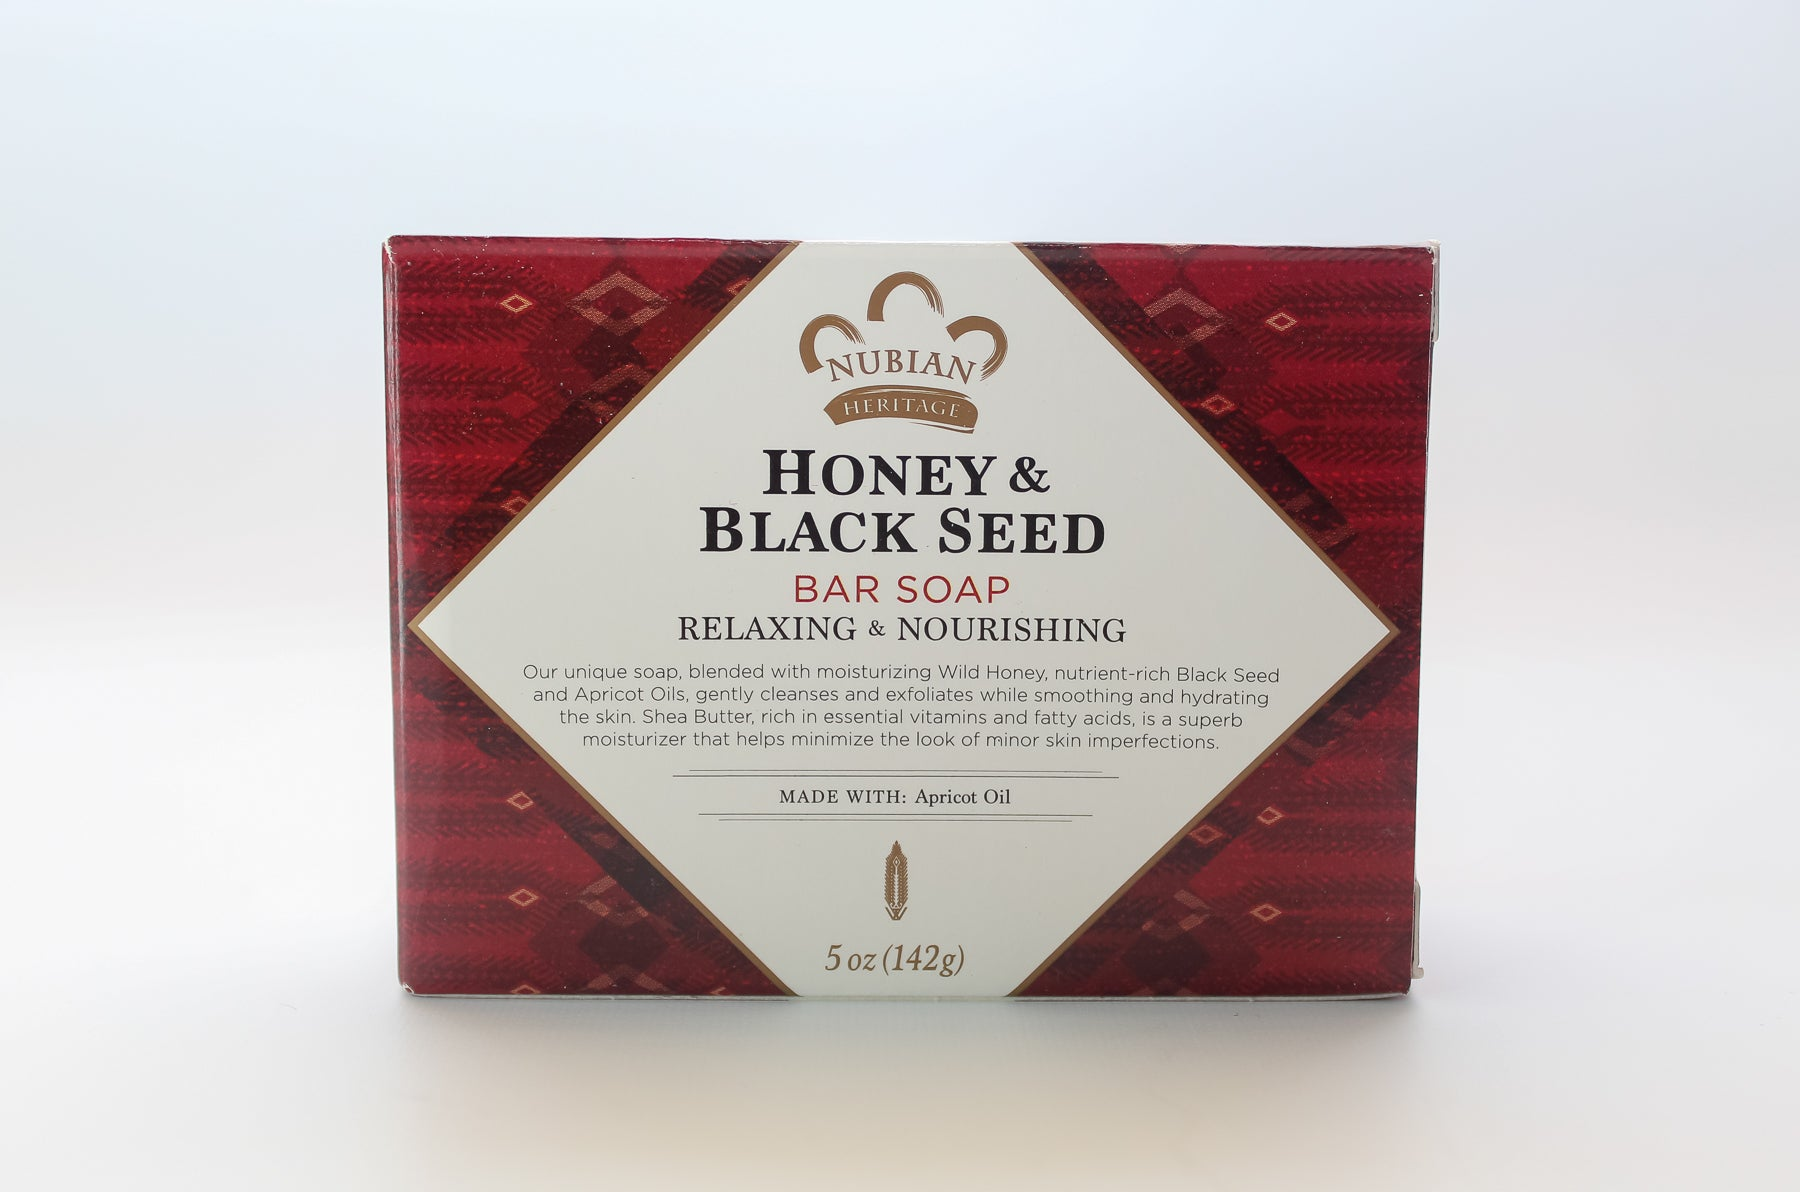 Honey & Black Seed Bar Soap, 5oz